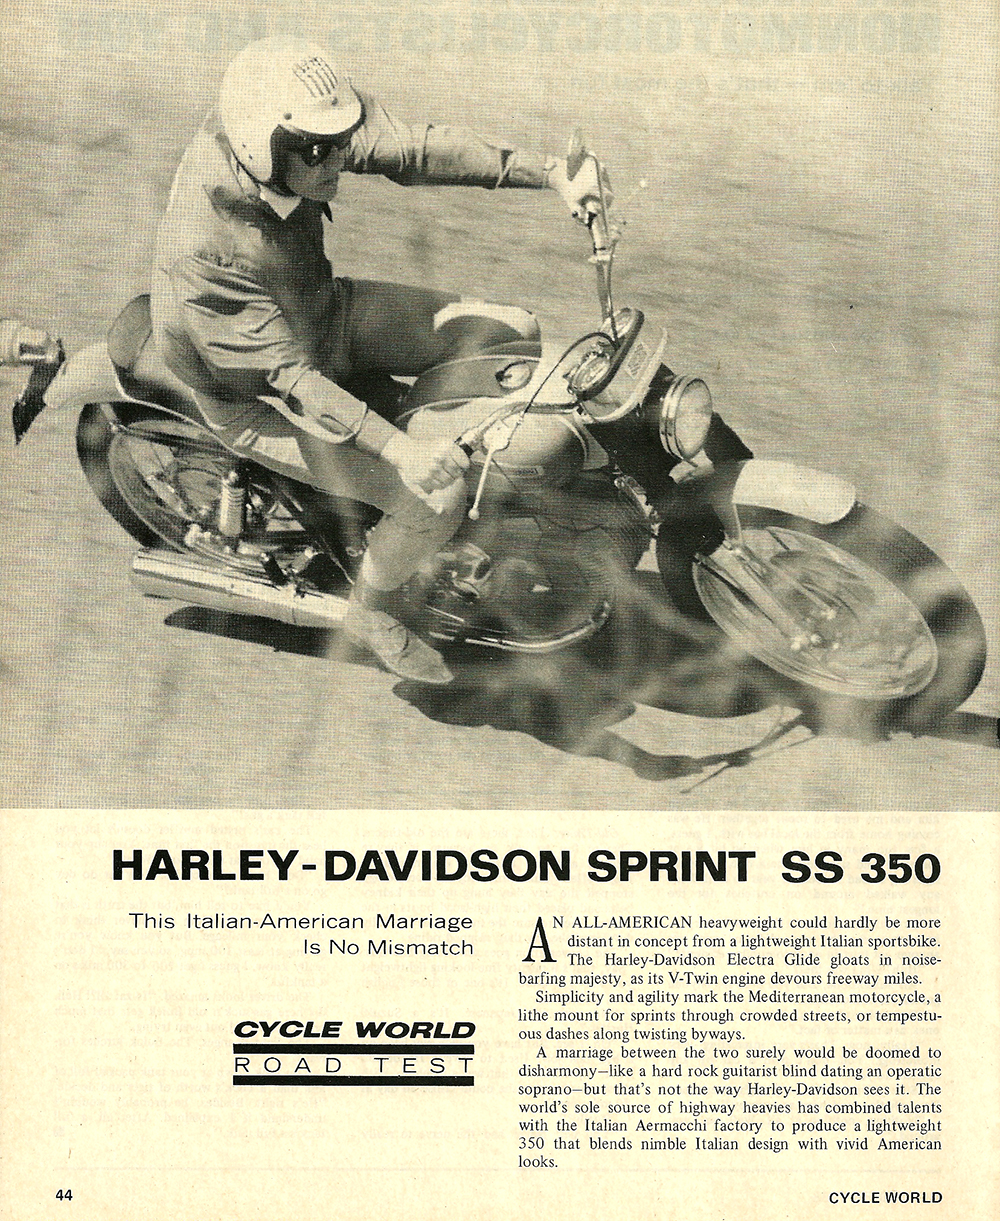 1968 Harley Sprint ss 350 road test 01.jpg